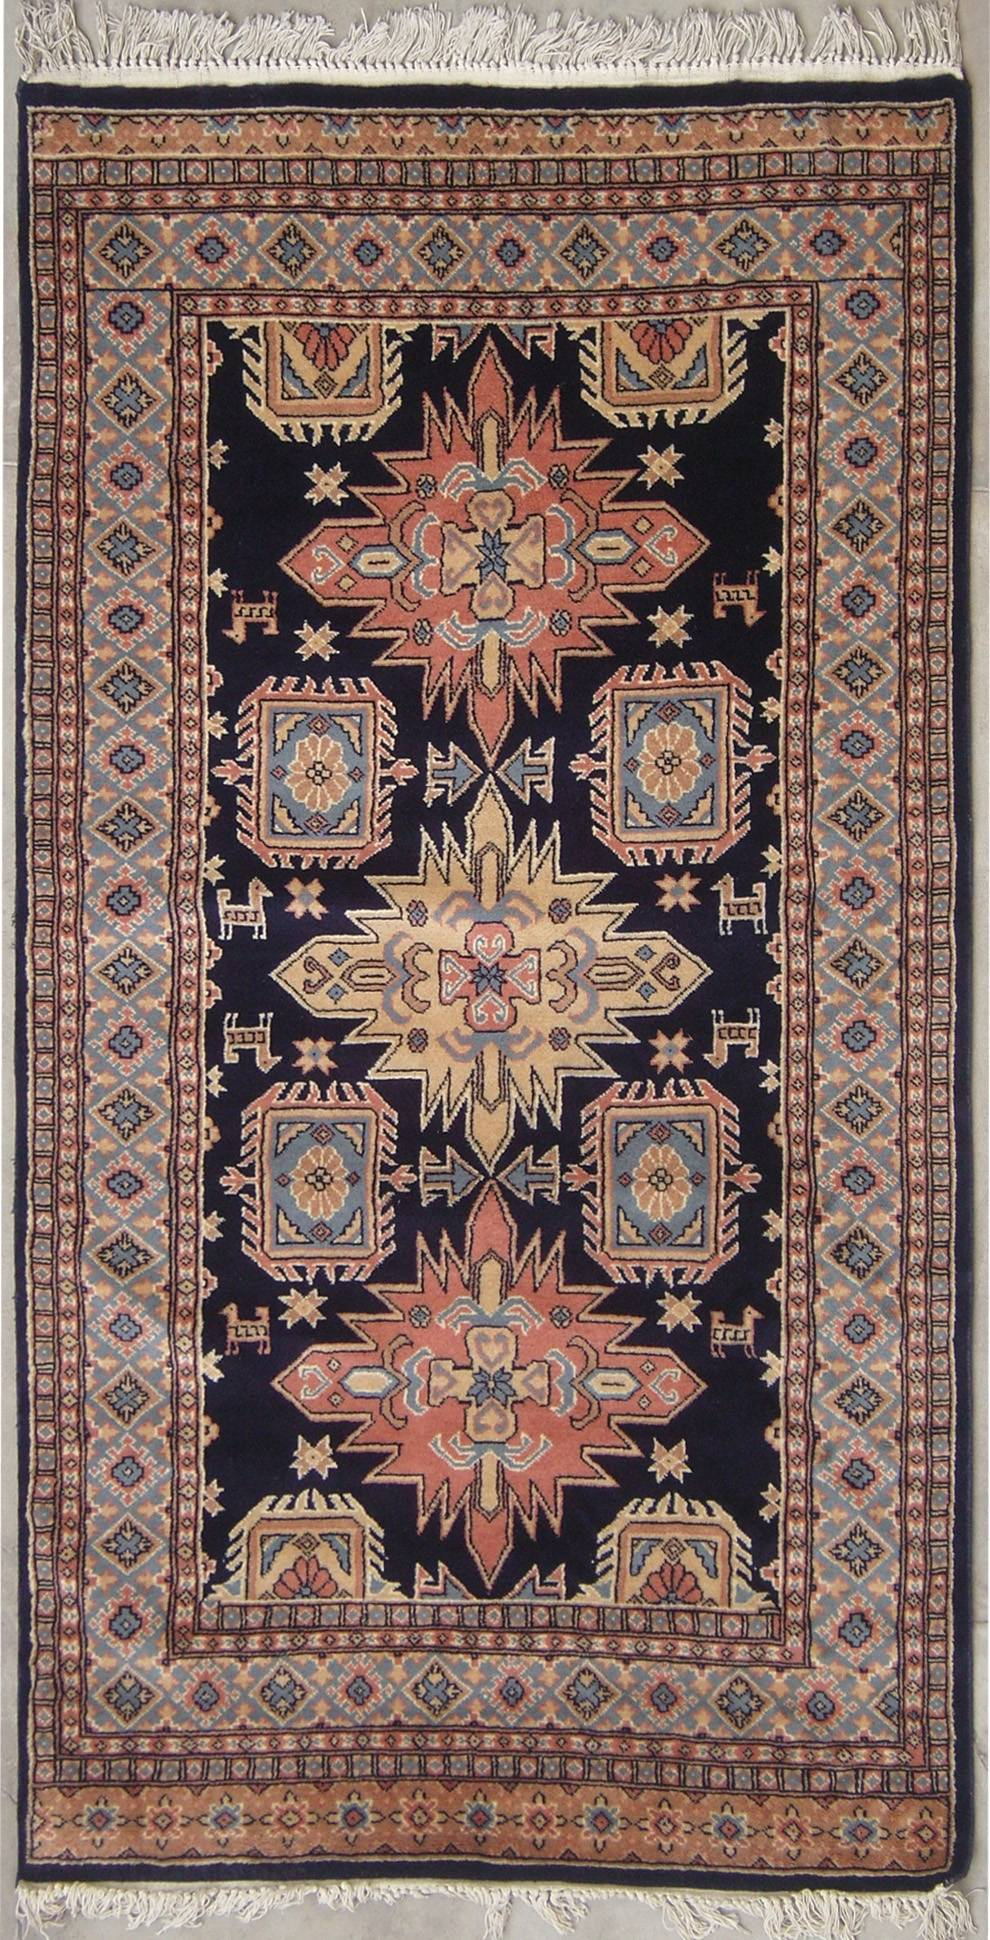 RugsTC 3'11 x 6'4 Caucasian Authentic Hand Knotted Area Rug with Wool Pile - 4x6 Small Rug at Sears.com